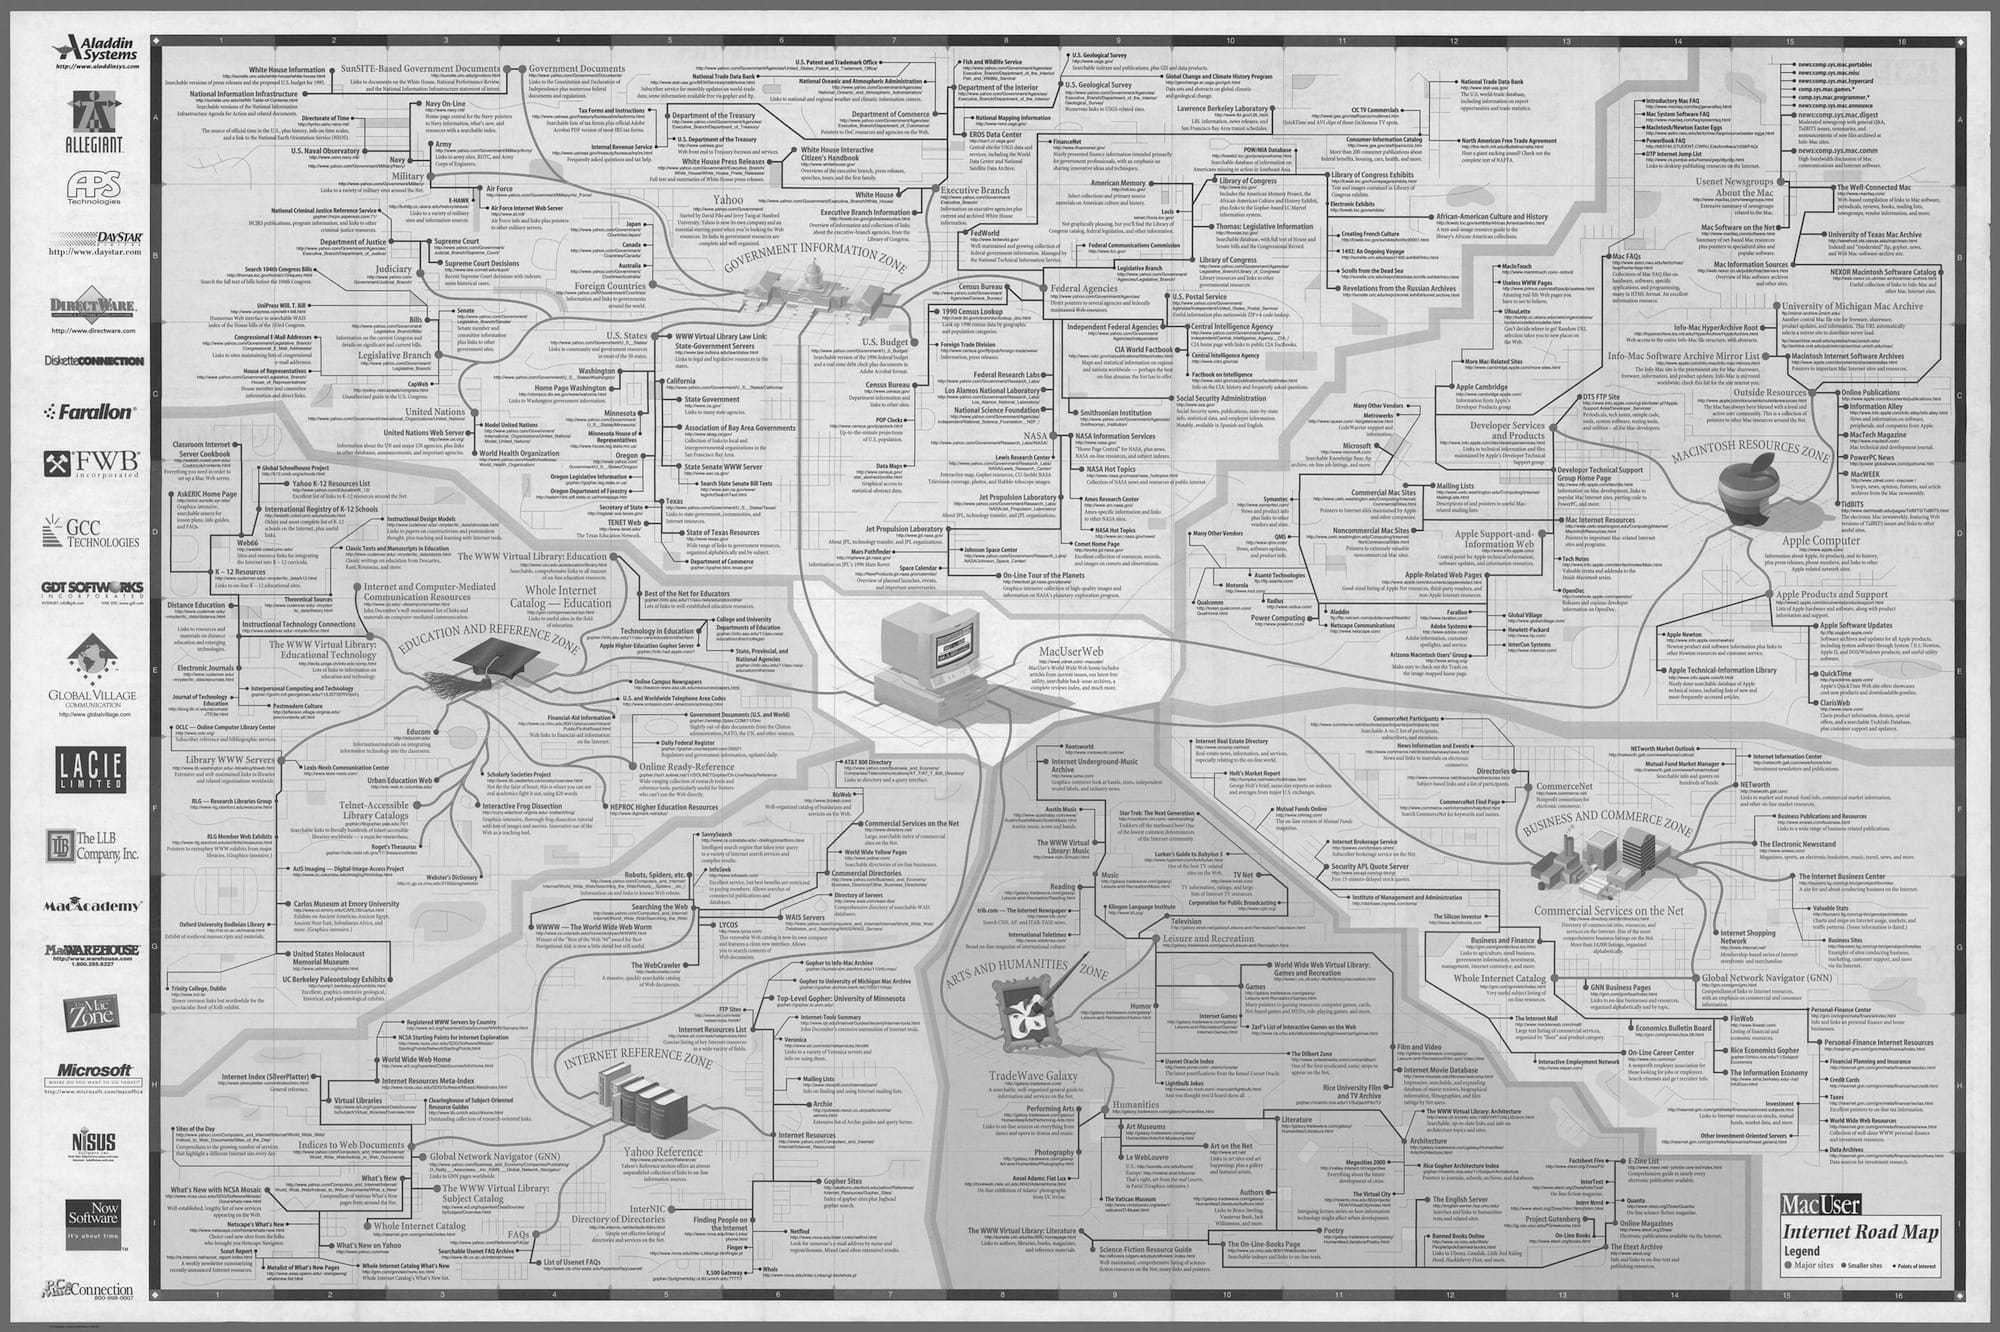 _MacUser_ Internet Road Map, 1996.© David Rumsey Map Collection